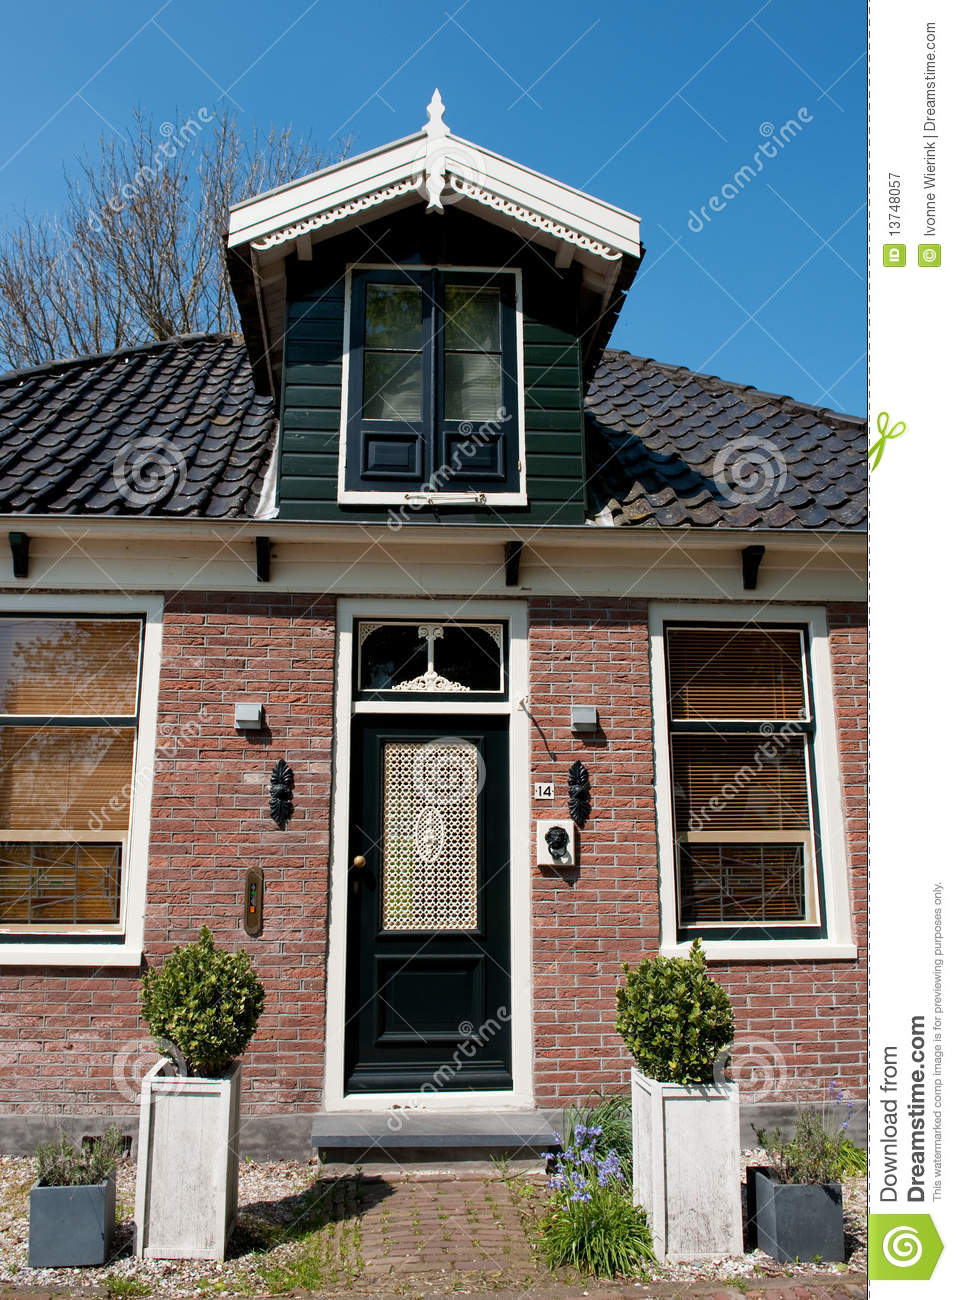 Traditional dutch house stock image image of green for Dutch house